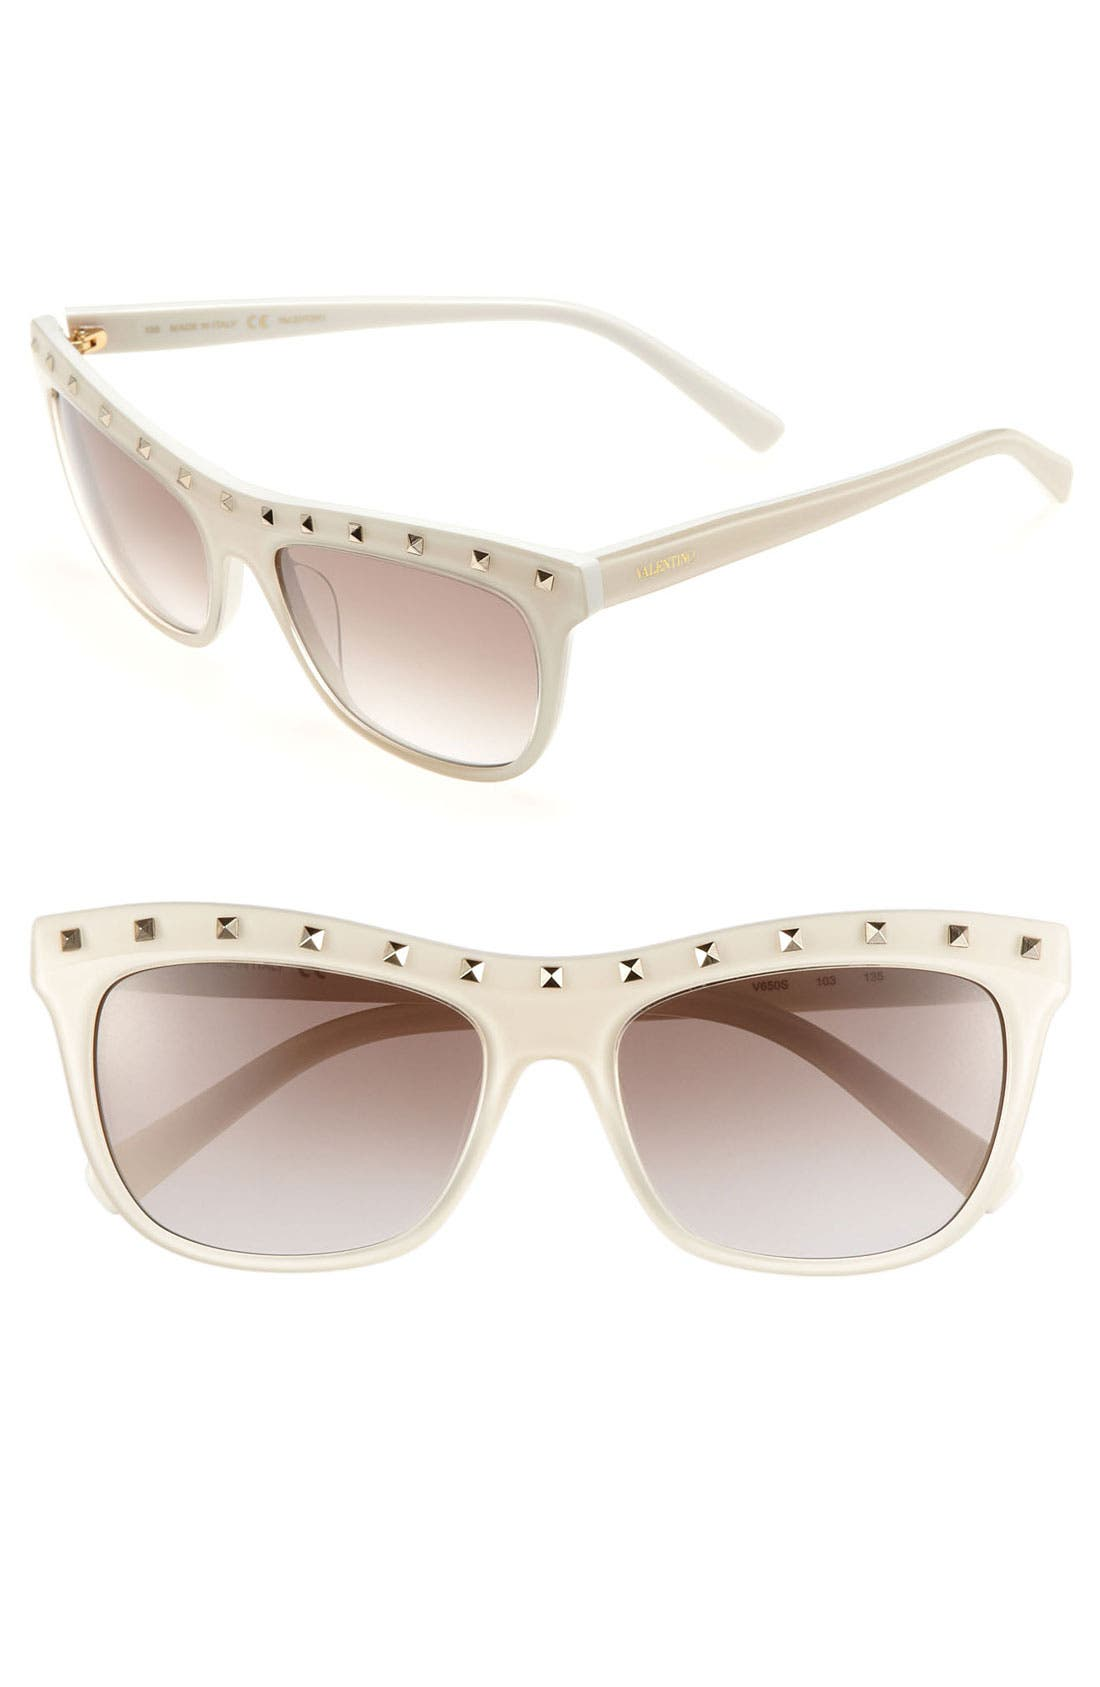 Main Image - Valentino 'Rockstud' 54mm Sunglasses